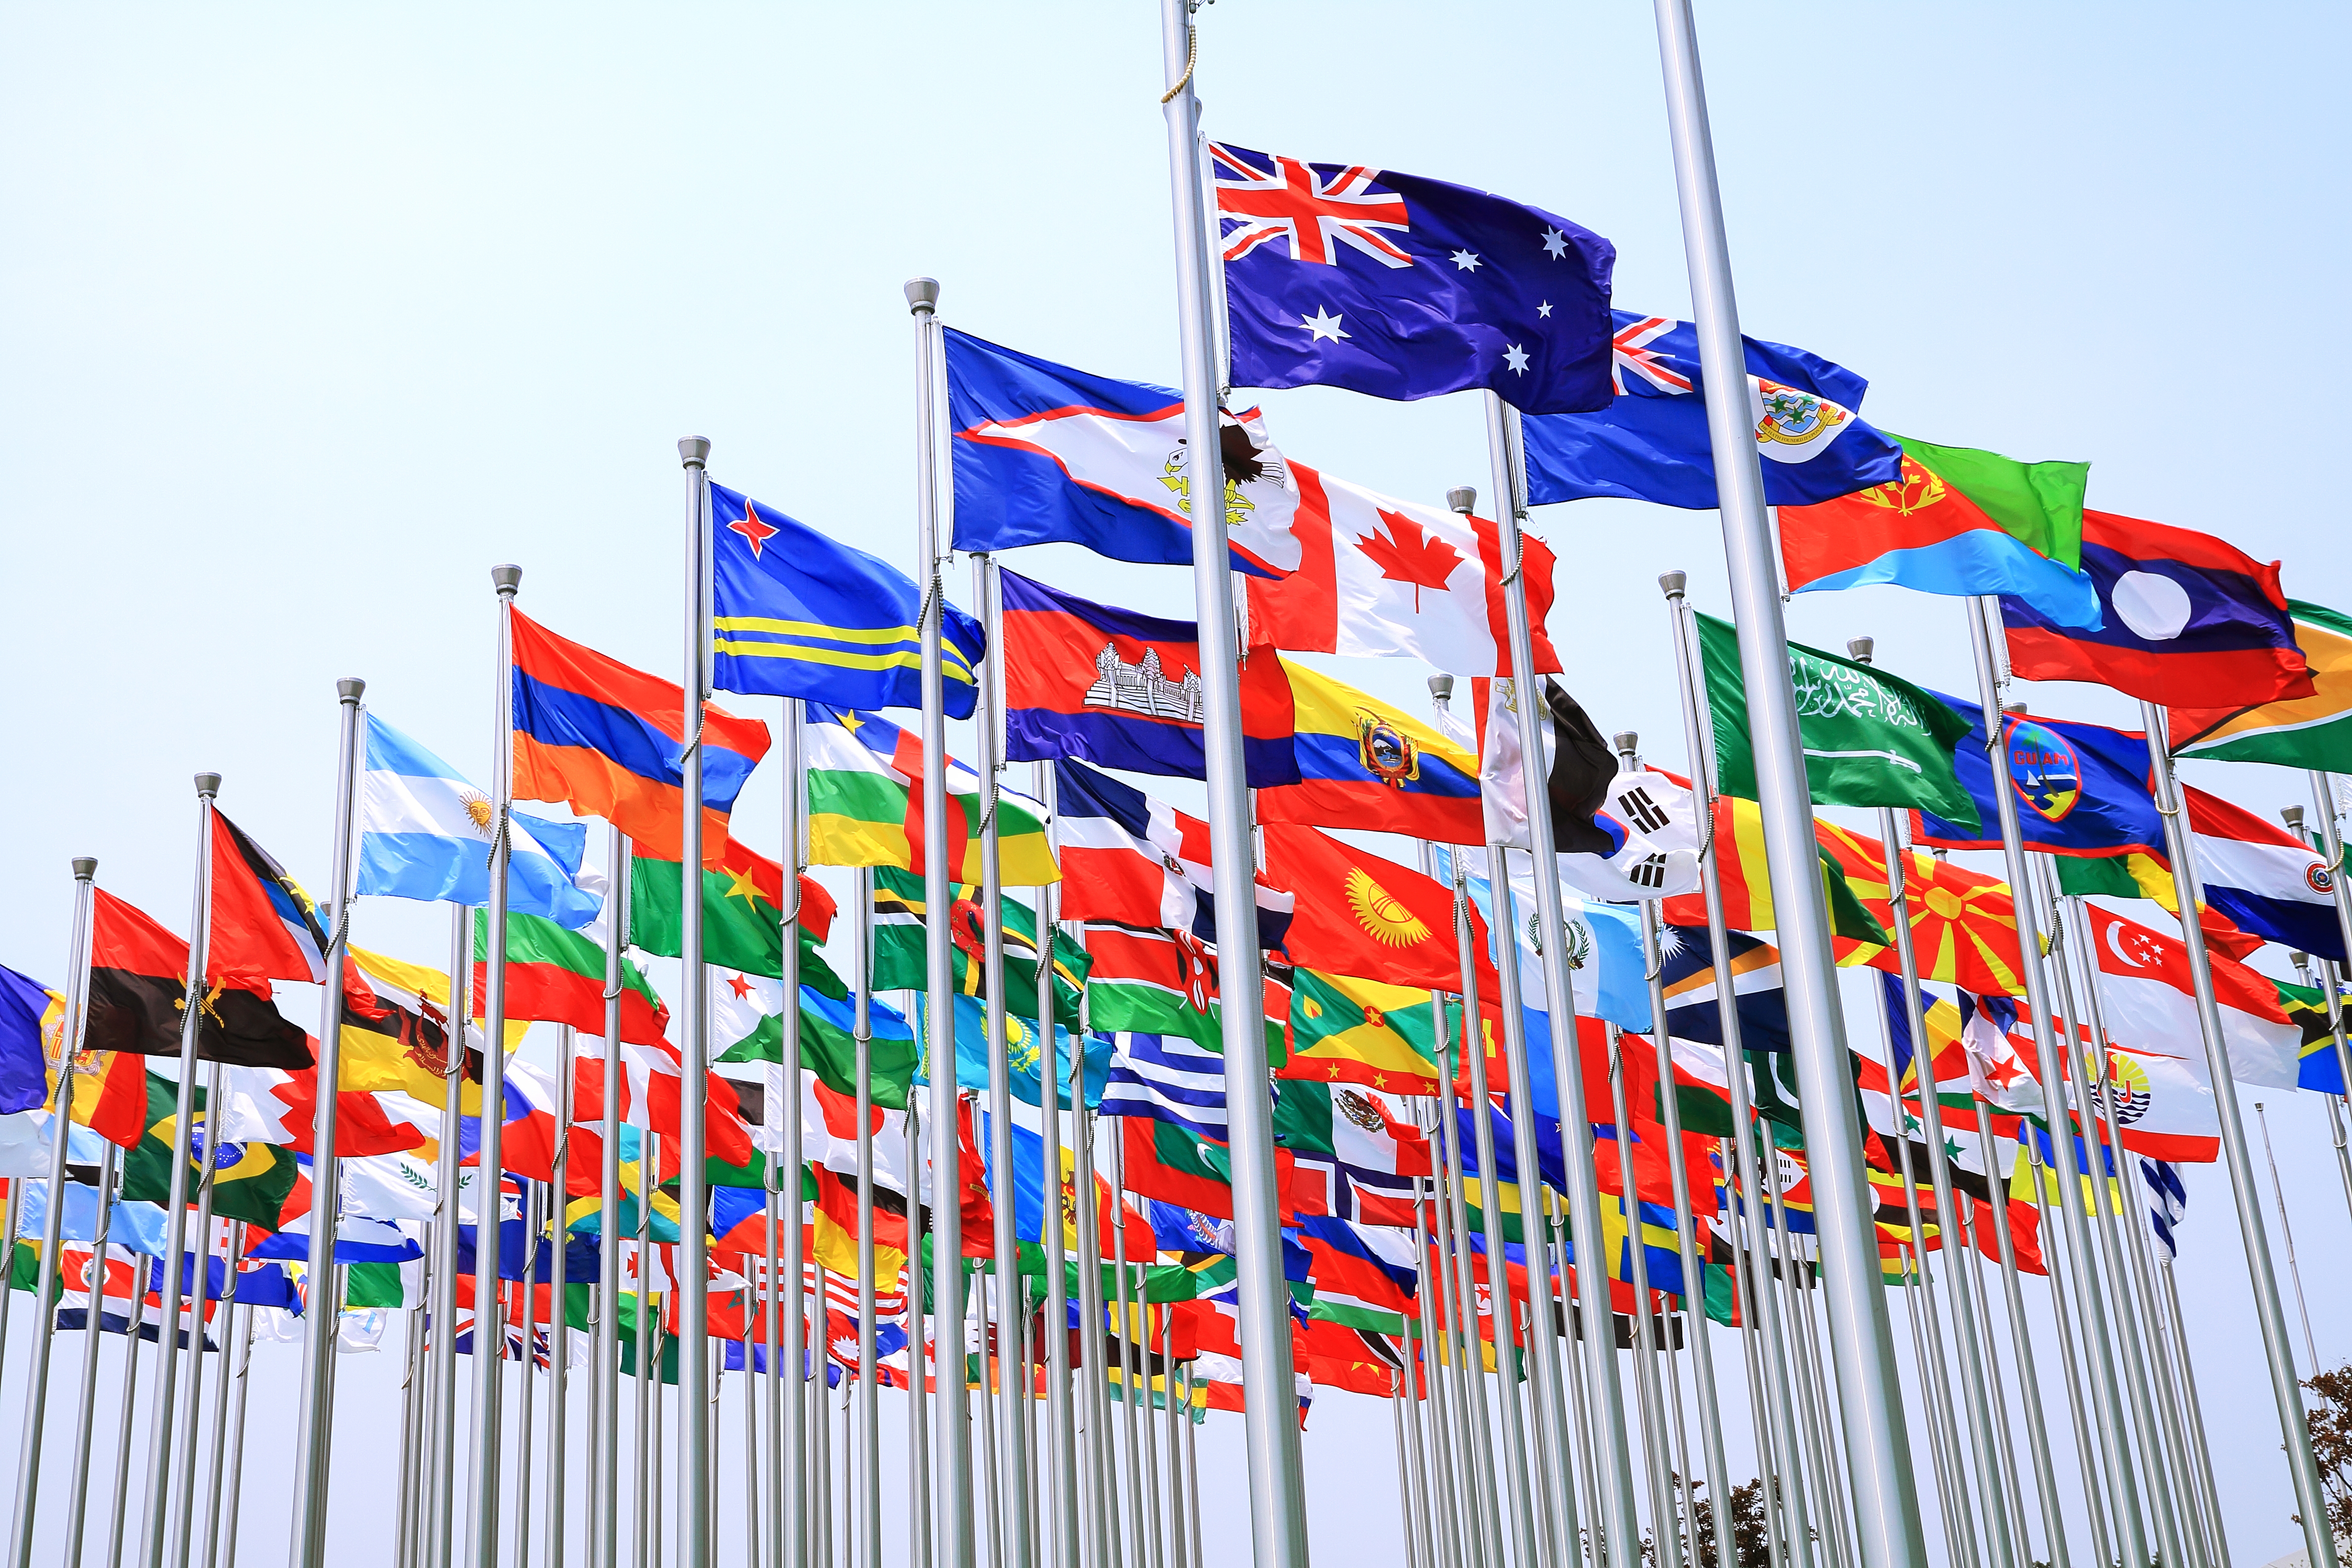 Flags outside the United Nations headquarters in New York City.